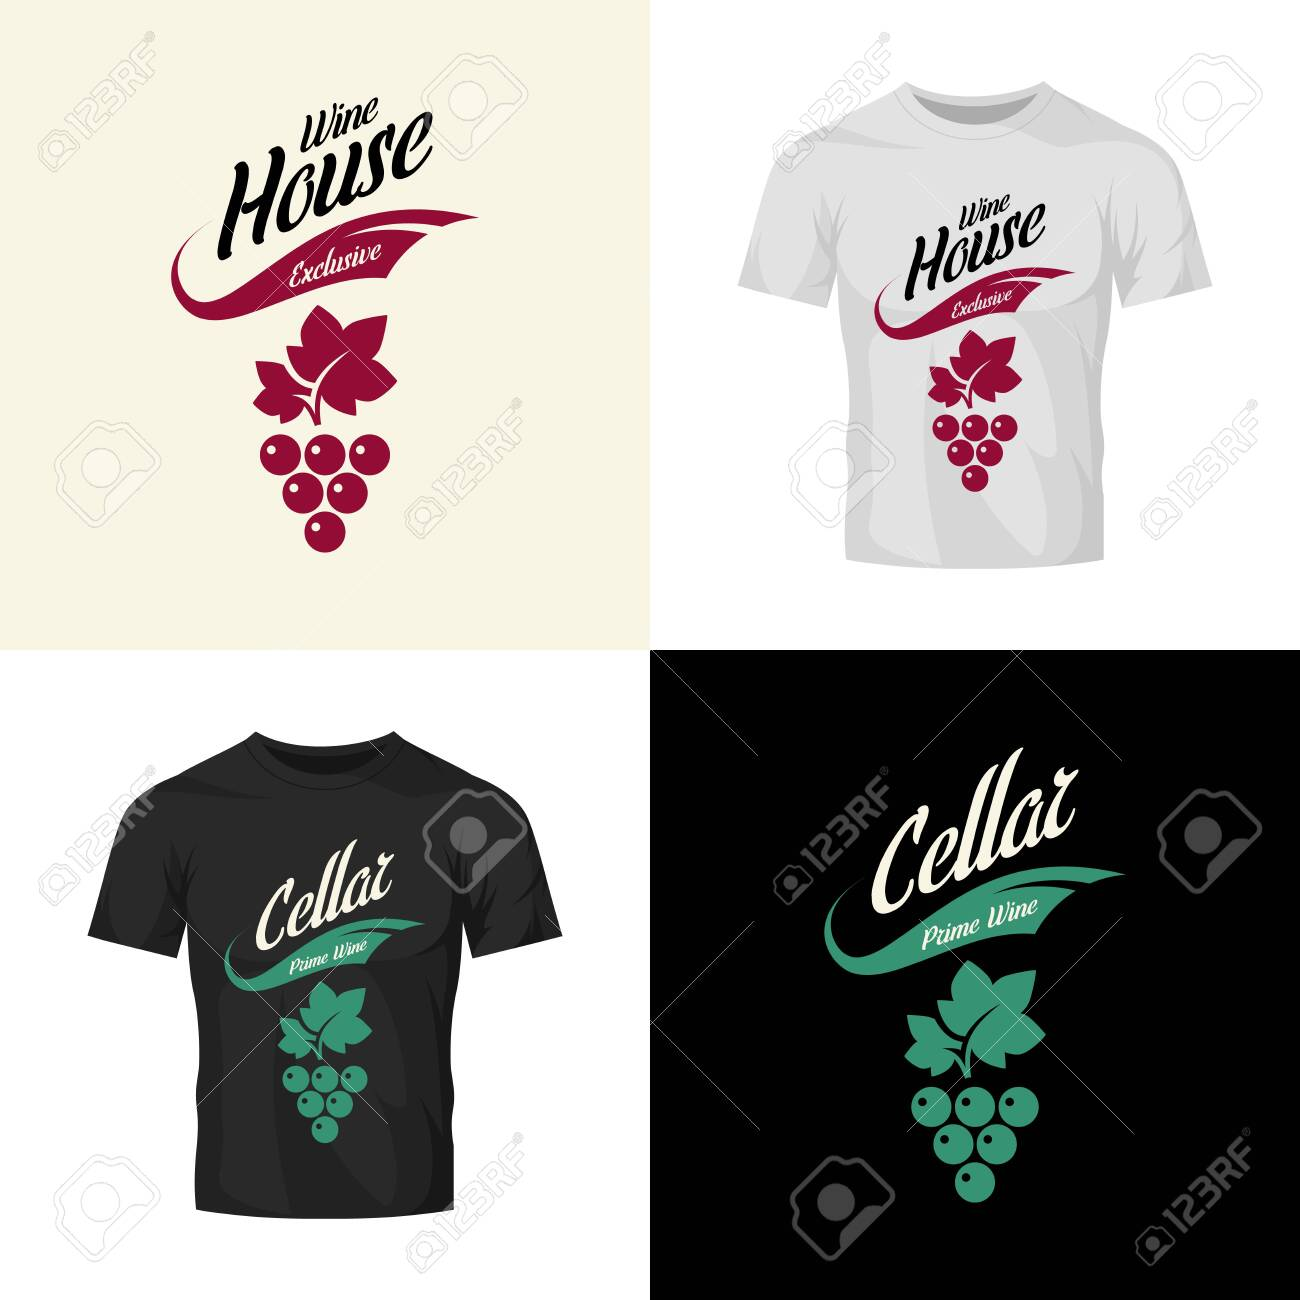 Modern wine vector isolated logo collection for tavern, restaurant, house, shop, store, club and cellar. Premium quality vinery logotype illustration set. Fashion brand badge design template bundle. - 120438790